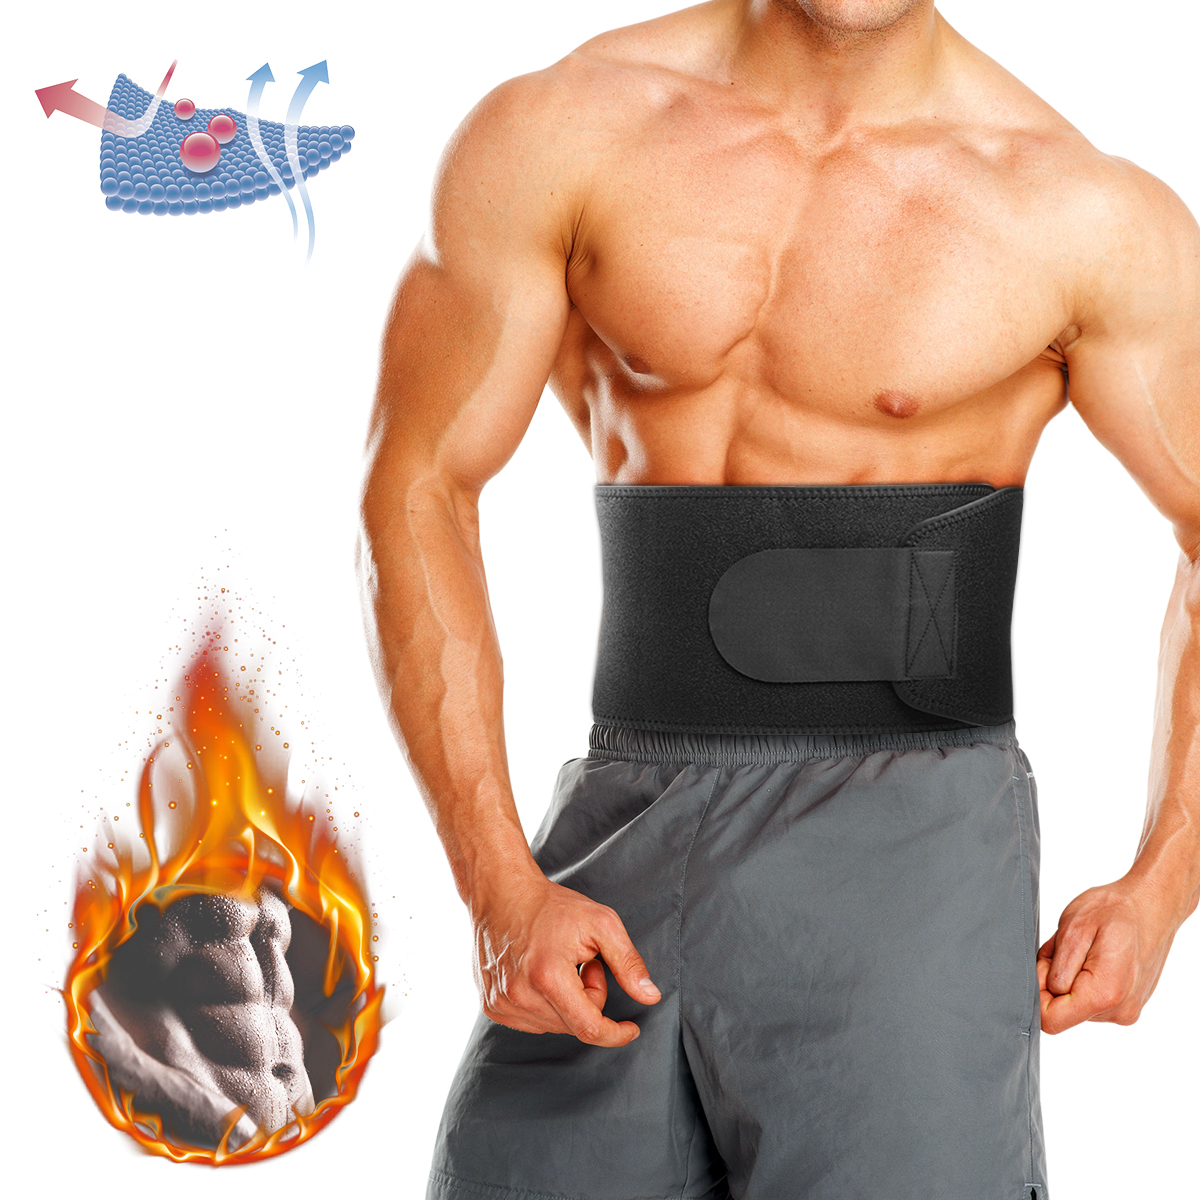 BIKIGHT Adjustable Waist Support Fitness Belt Sport Protection Back Absorb Sweat Fitness Protective Gear